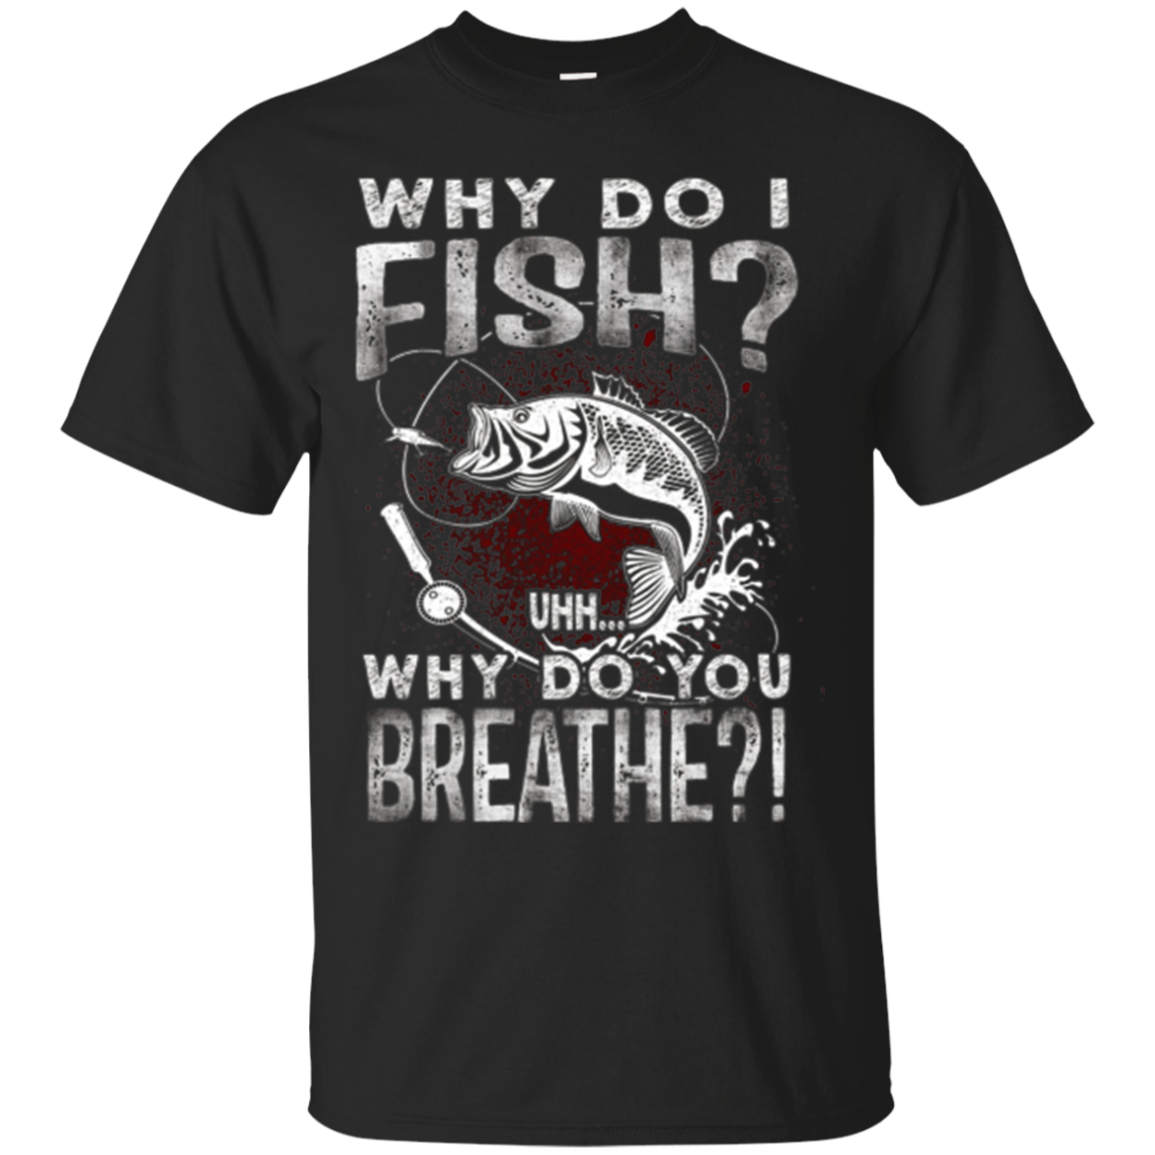 Mens Funny Fisherman Gifts For Men - Why Do I Fish Tshirt